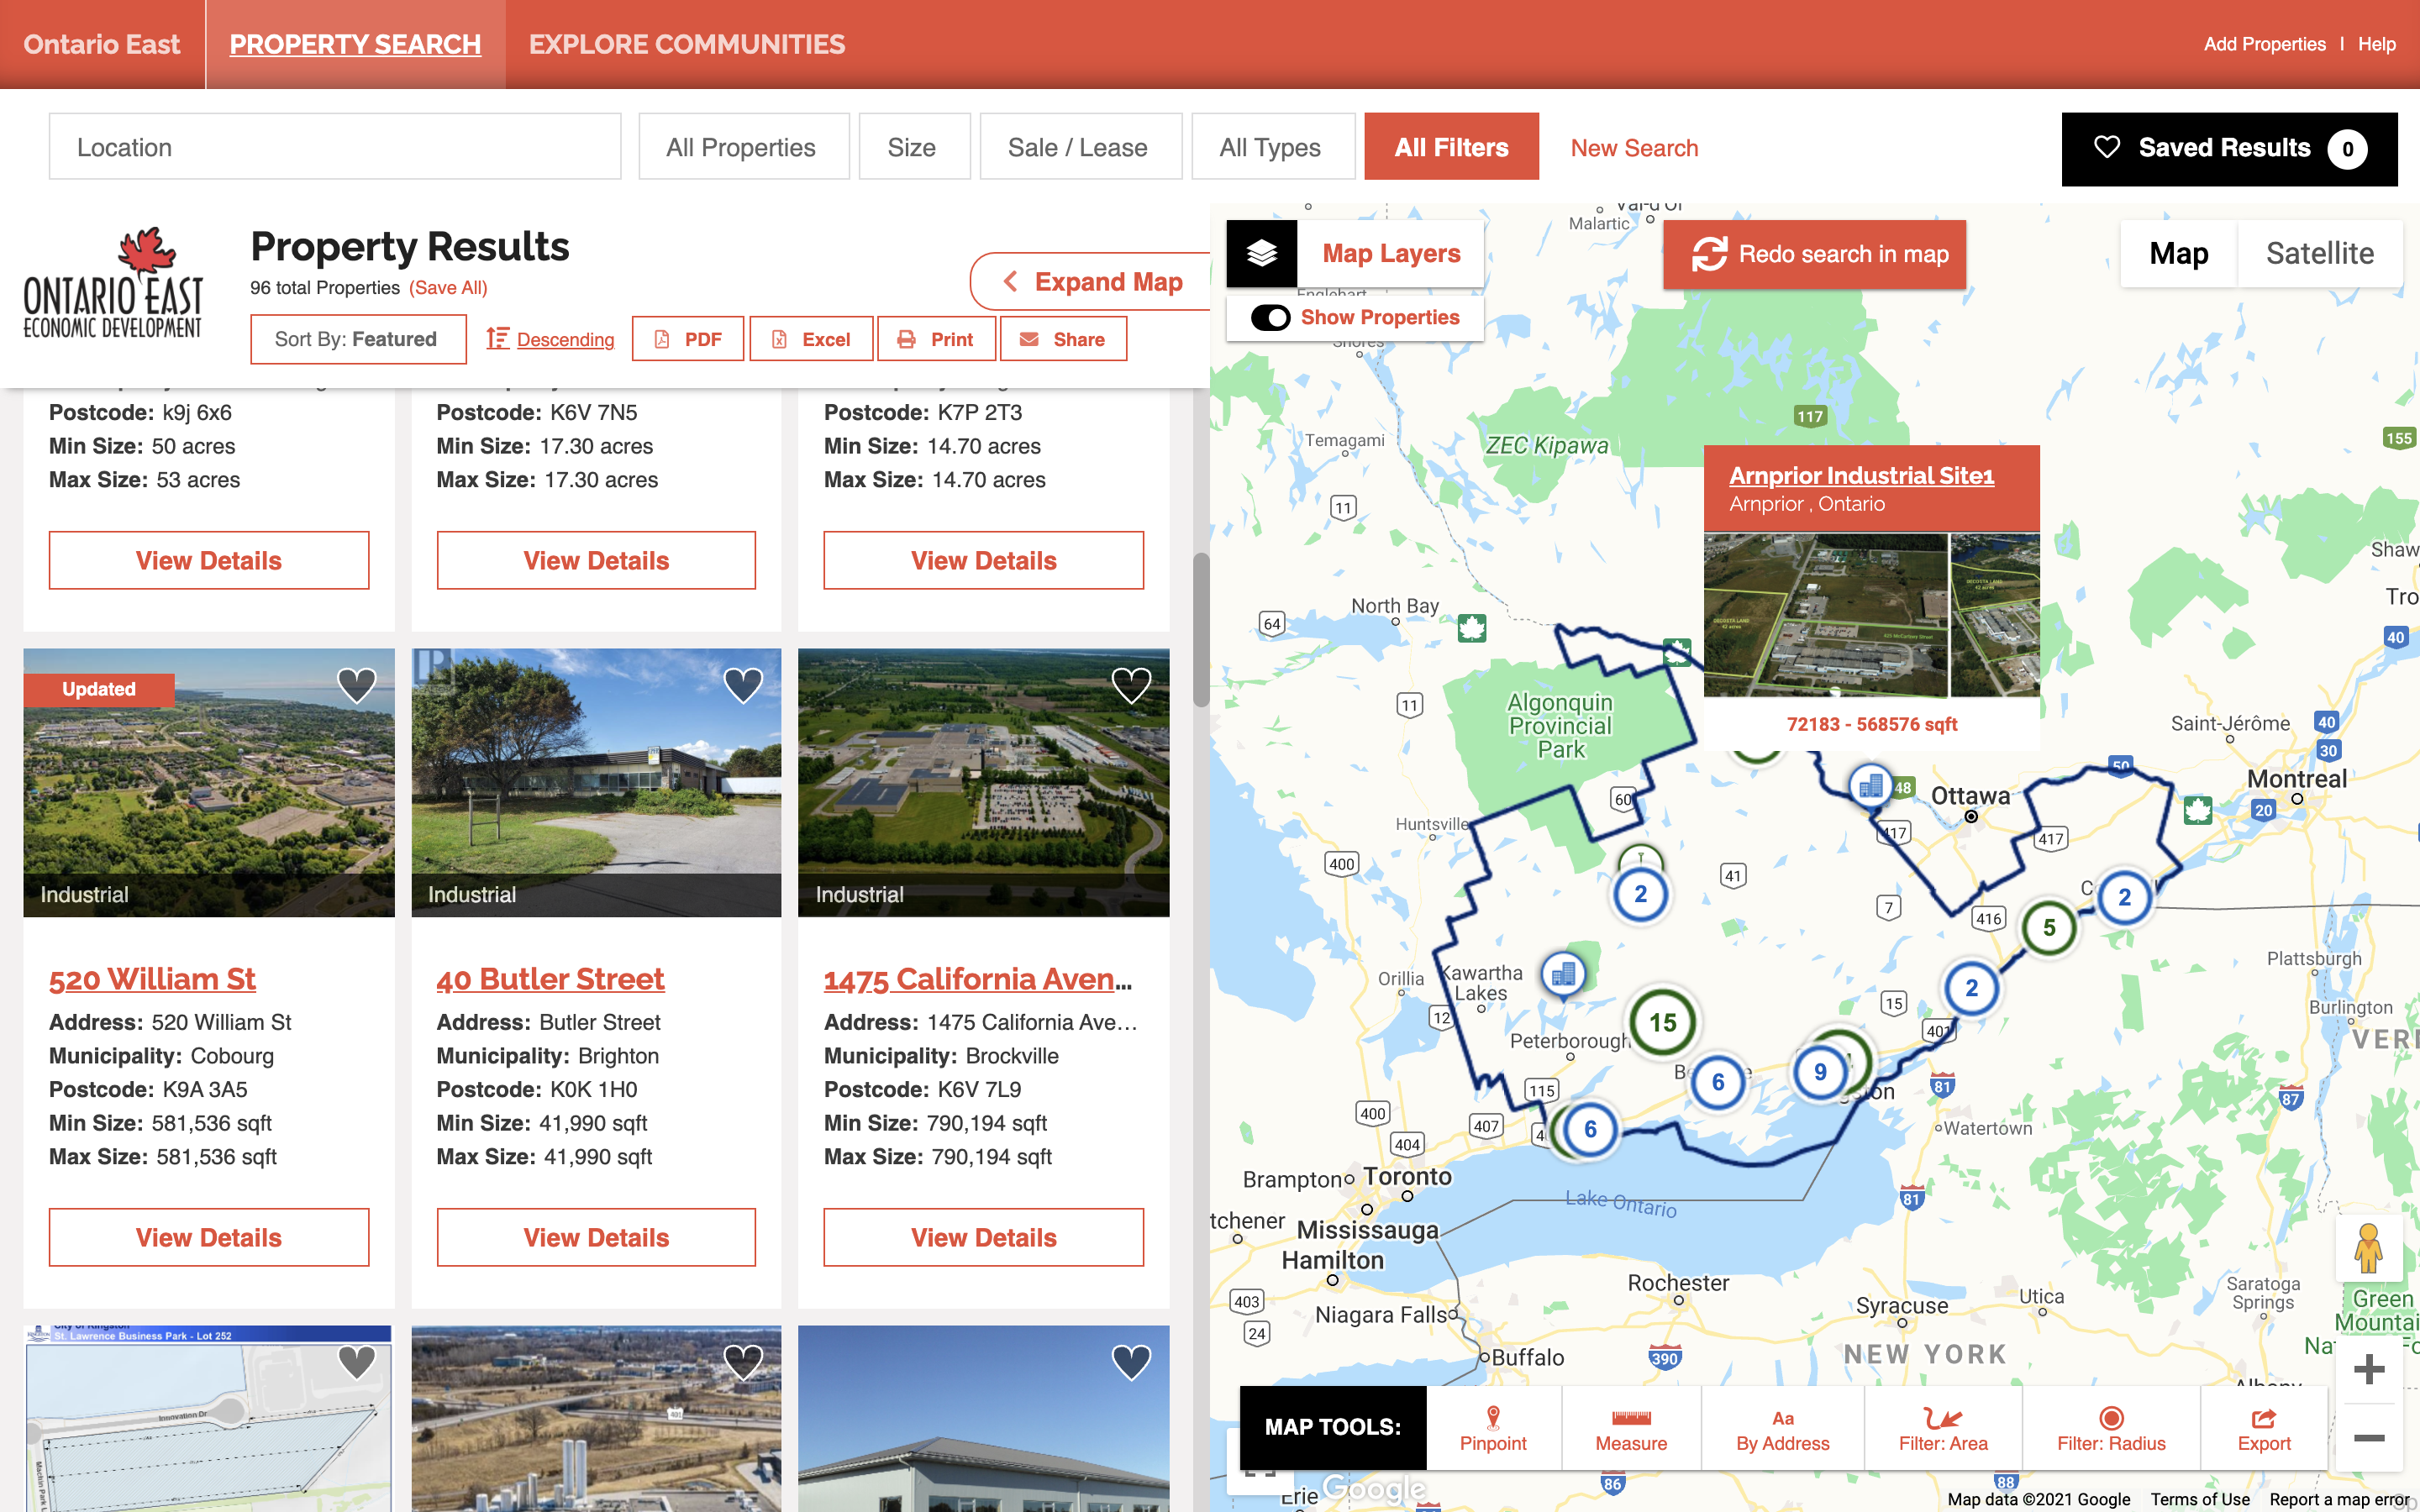 Ontario East site selection web tool